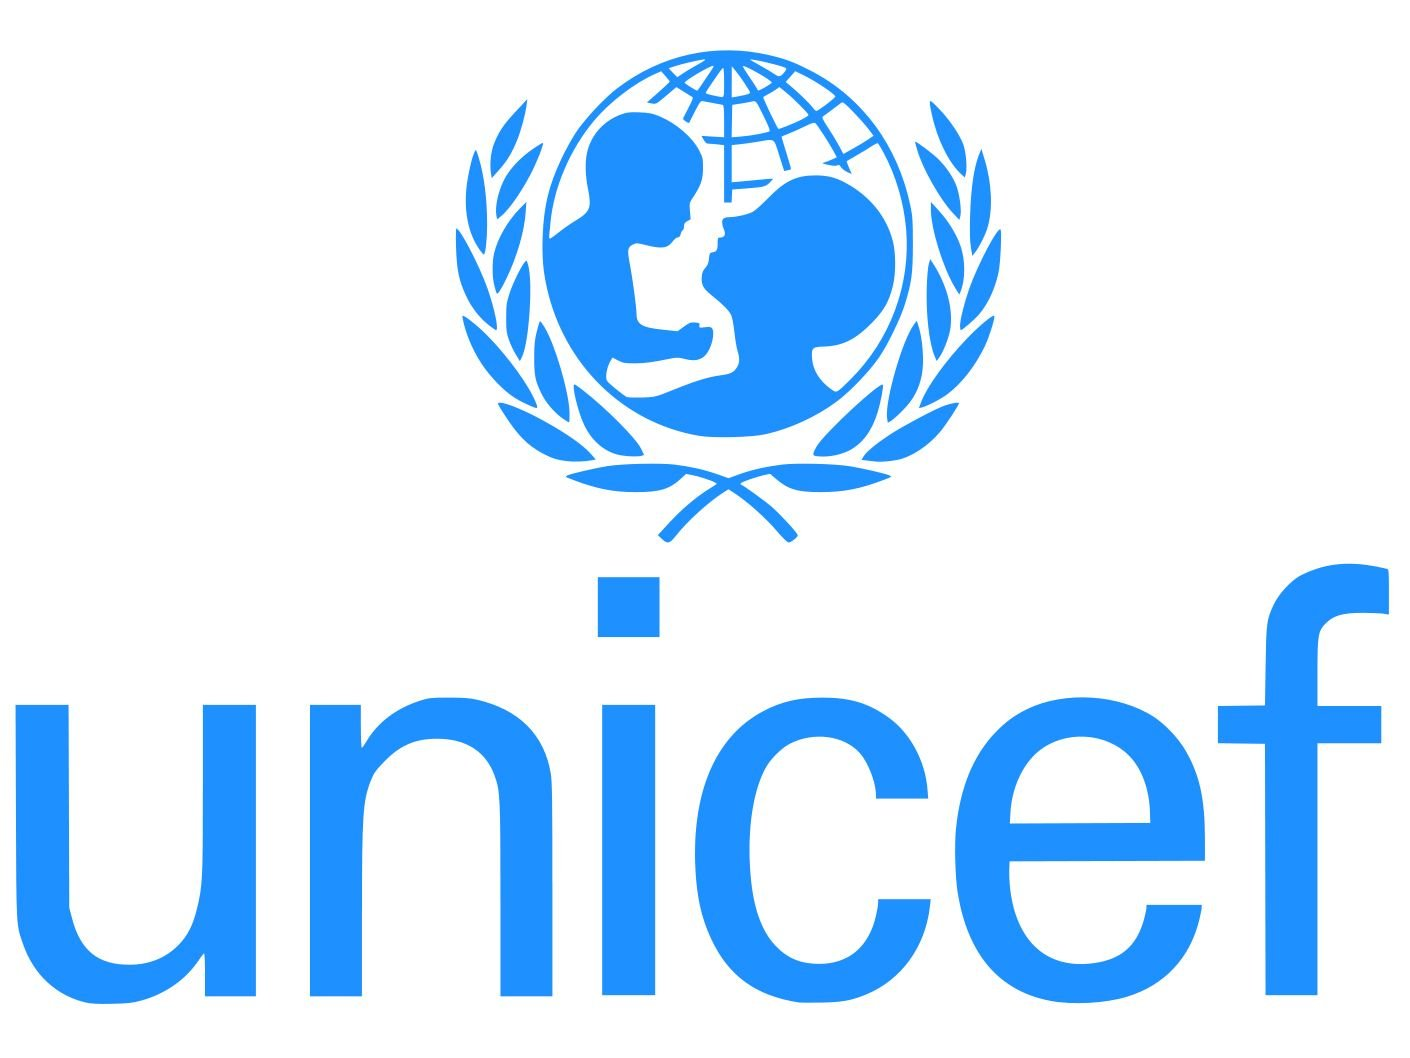 UNICEF and Azerbaijan education authorities support early childhood development through new parenting app